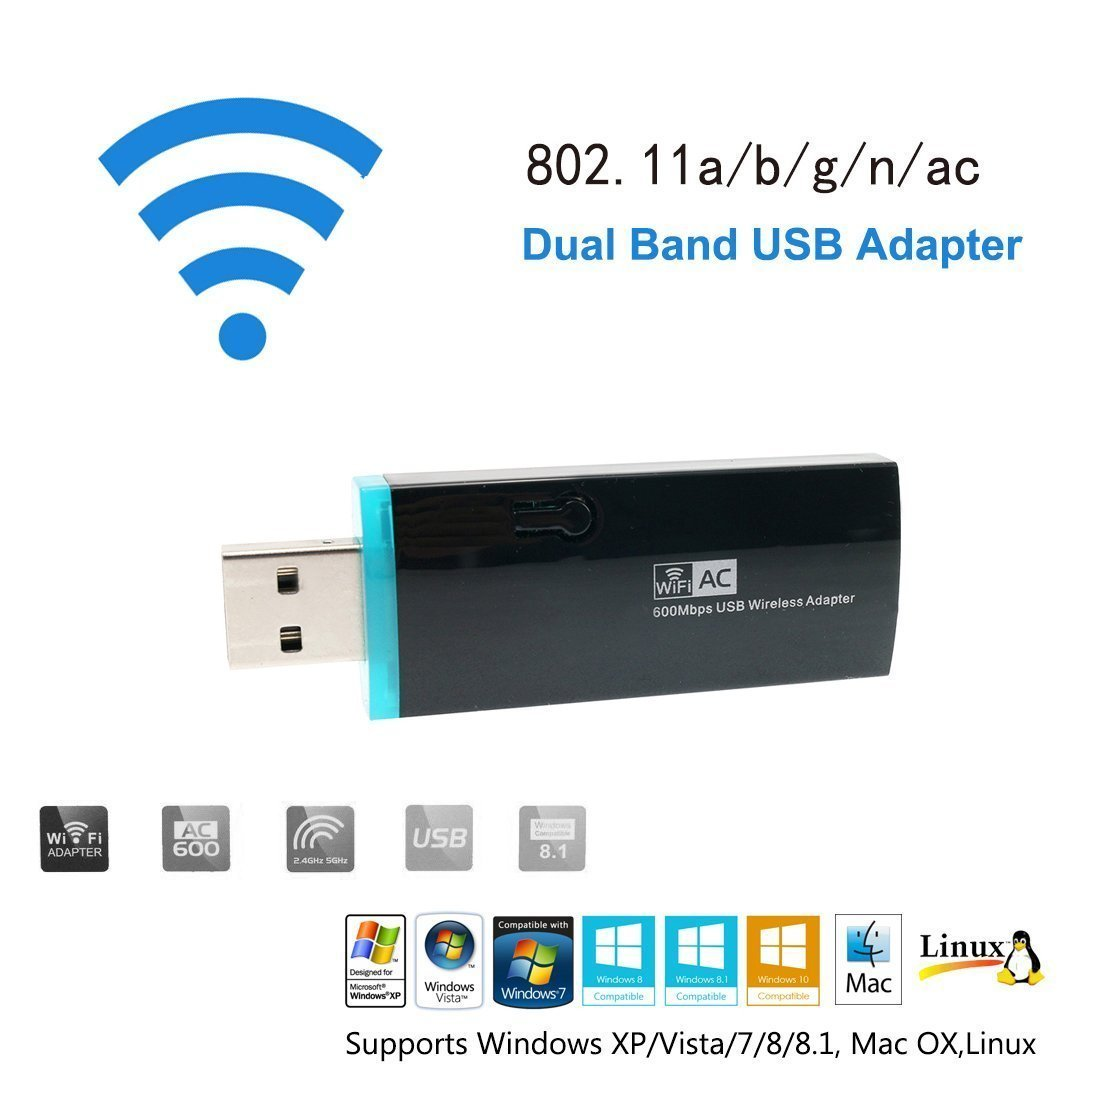 Urant AC600 USB Wifi Adapter USB Dongle Wireless Range Extender Amplifier Signal Booster Dual Band Network Mini Router AP High Speed With WPS Support Win10 Vista XP MAC OS Linux(433+150Mbps)